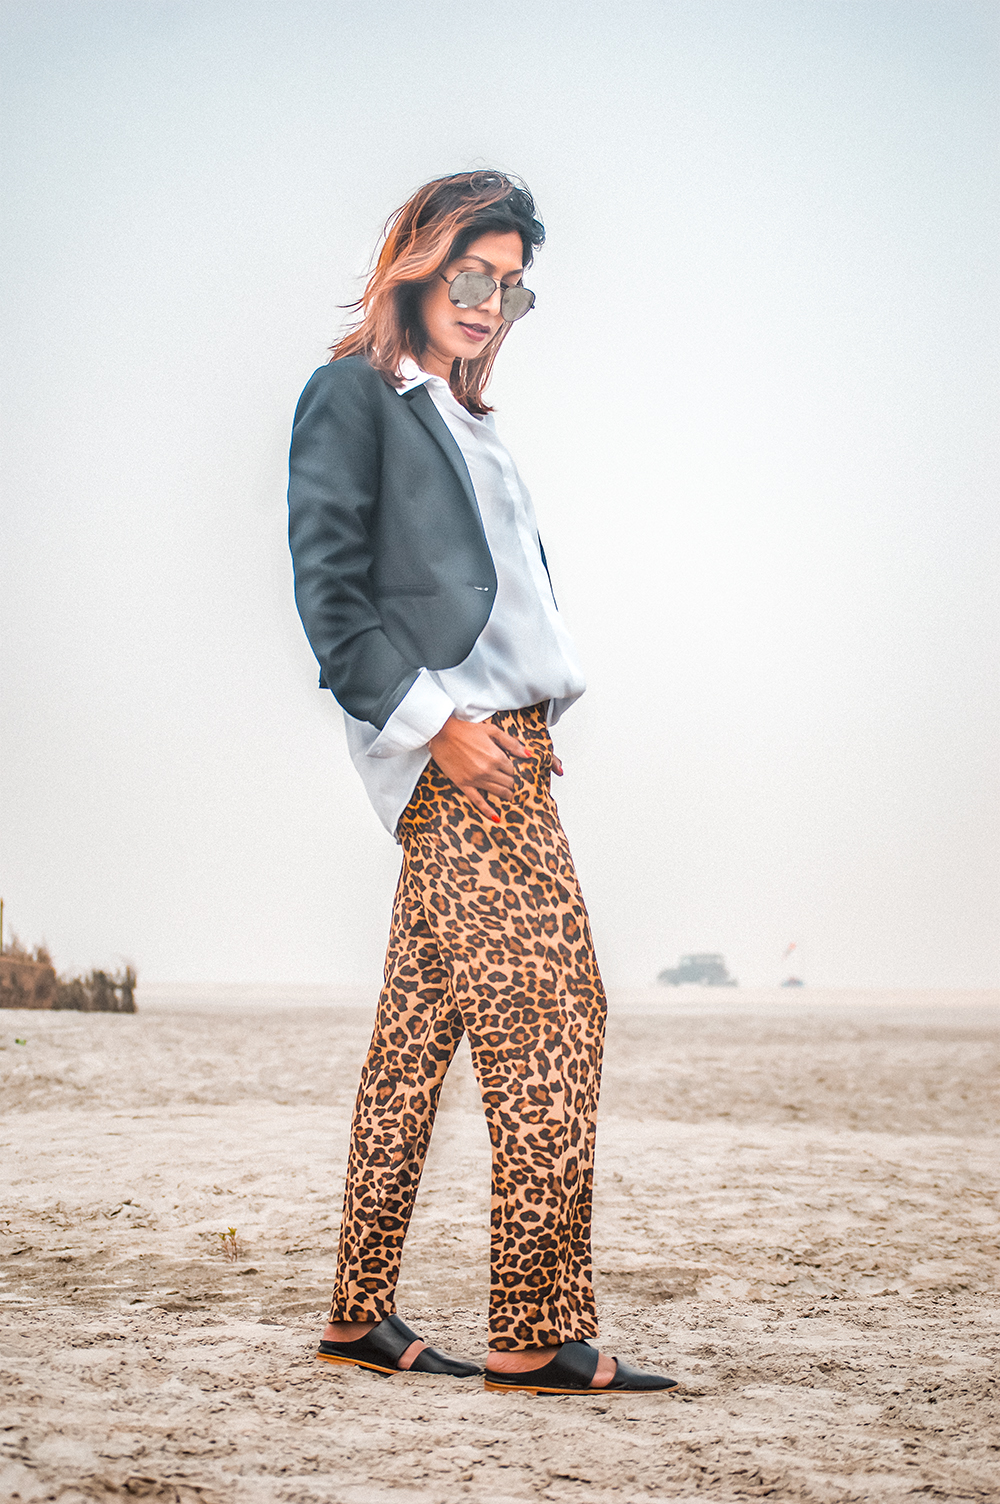 Leopard Print to Work, Leopard Print, Work wear, Office wear, Formal Fashion, How to style, Style Tips-3